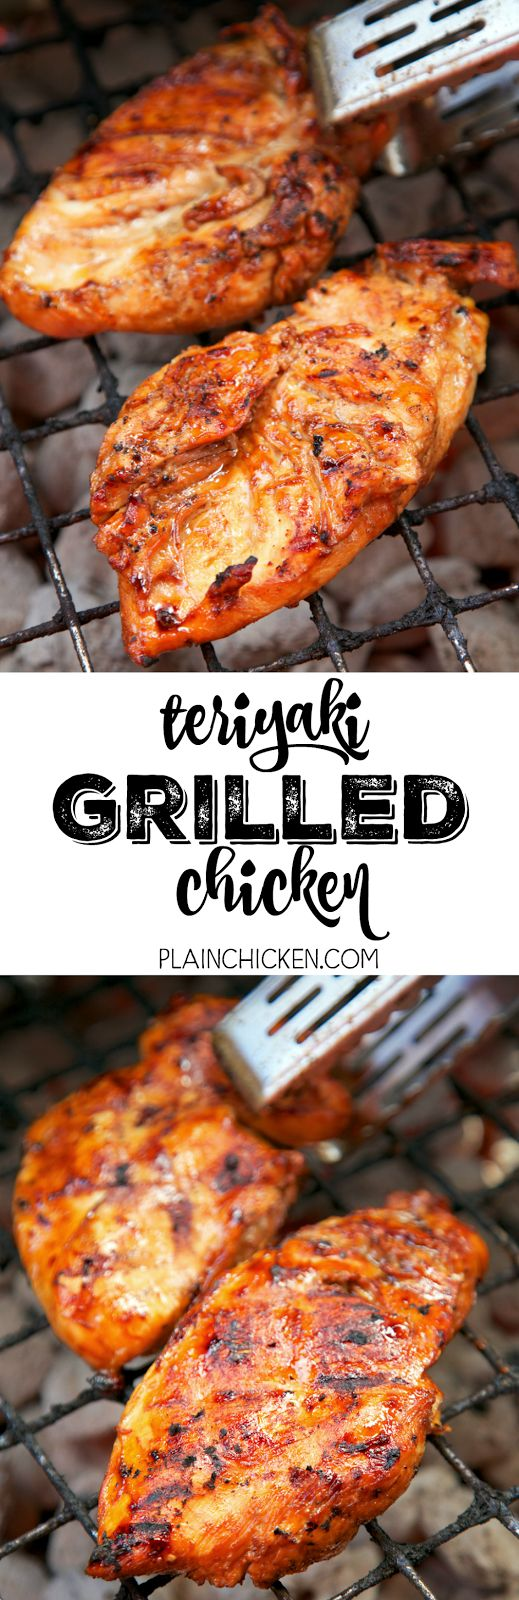 Teriyaki Grilled Chicken - no more bottled teriyaki sauce! This marinade is  so easy and